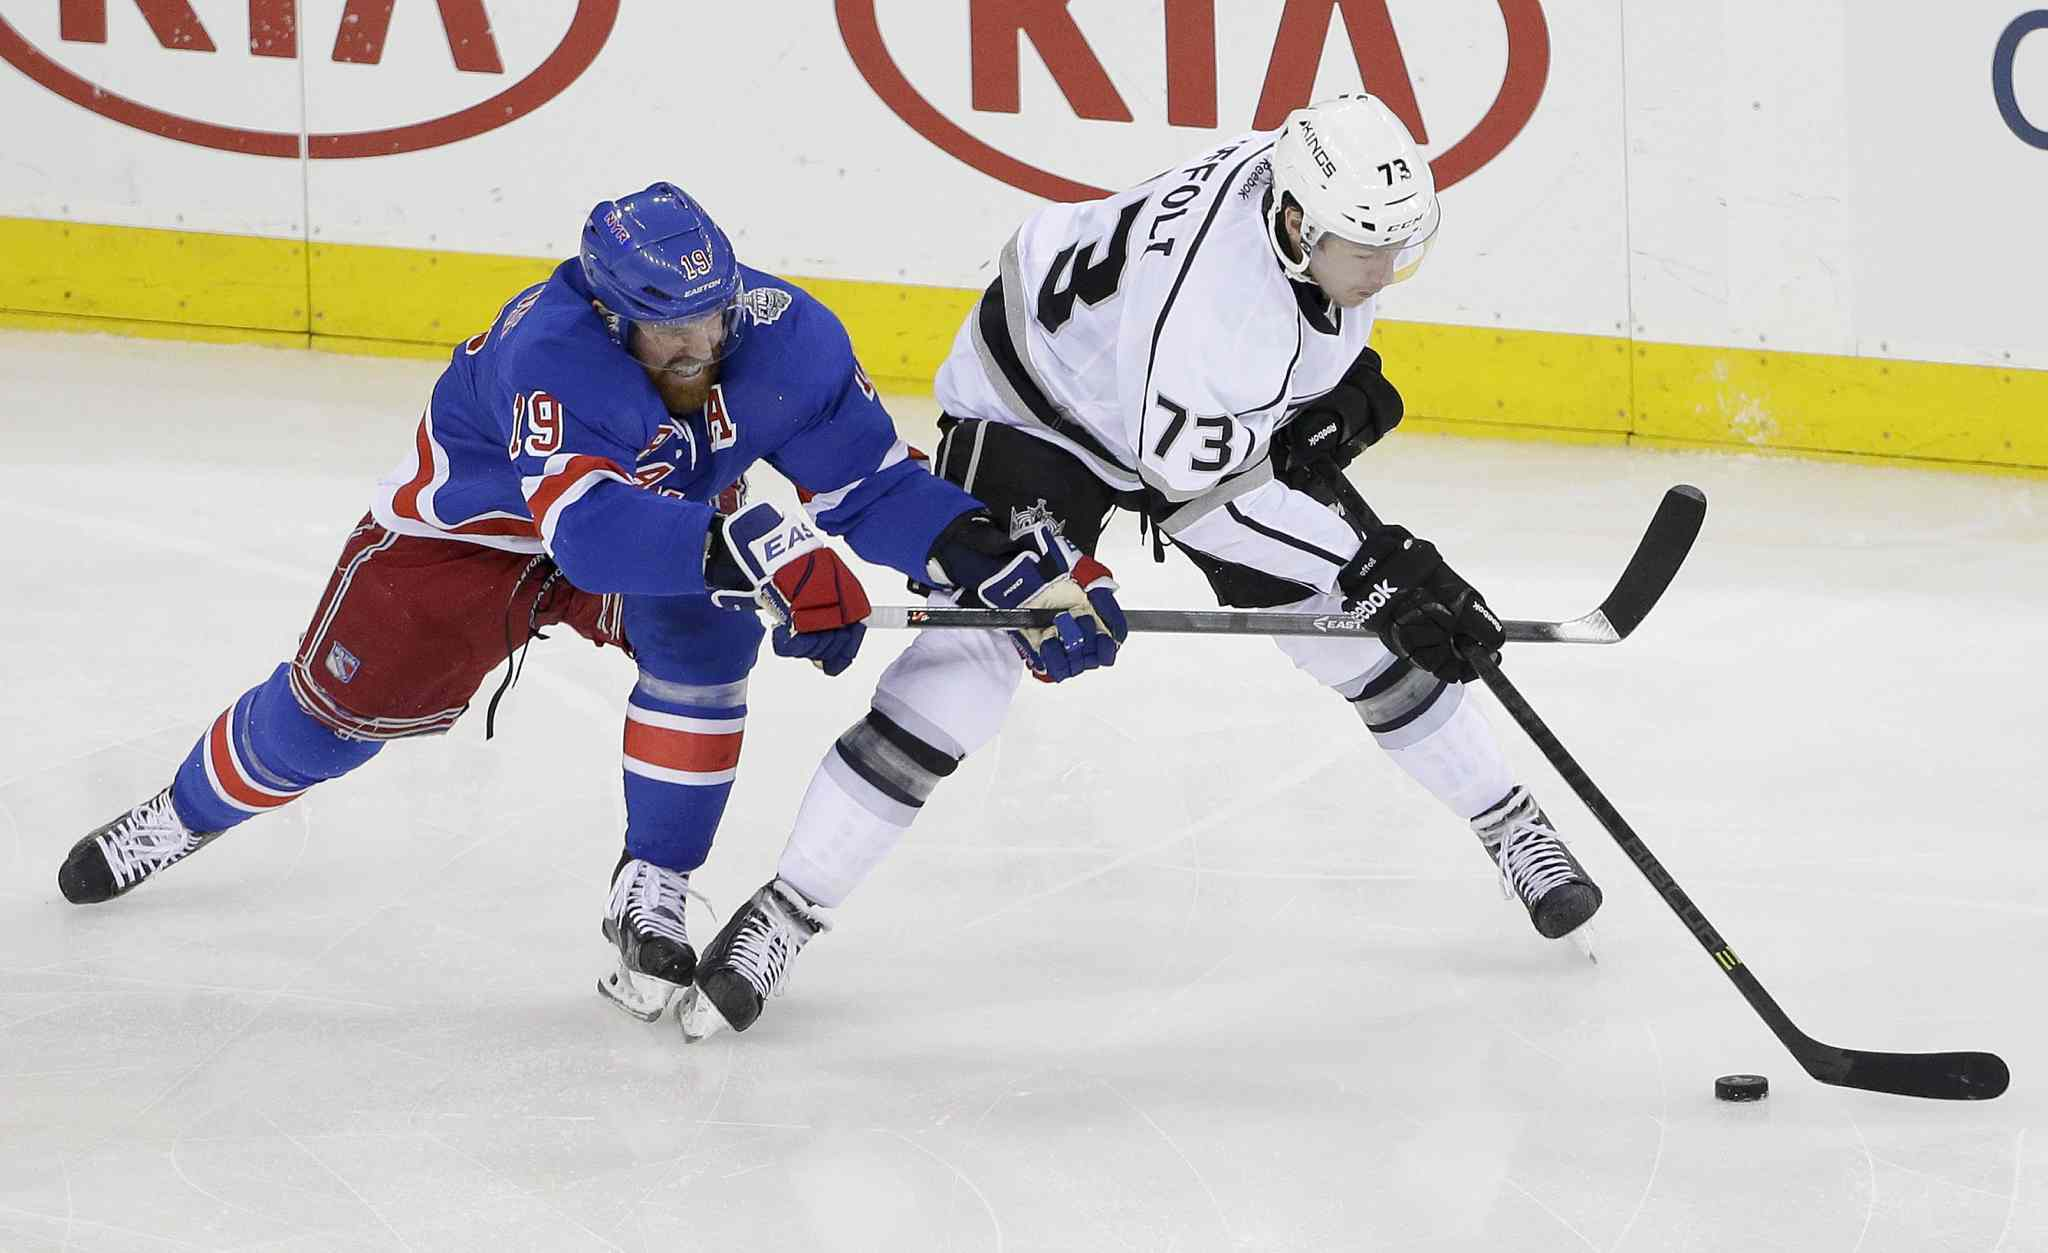 New York Rangers' centre Brad Richards (19) vies for the puck against Los Angeles Kings' centre Tyler Toffoli (73) in the first period of Wednesday's game.